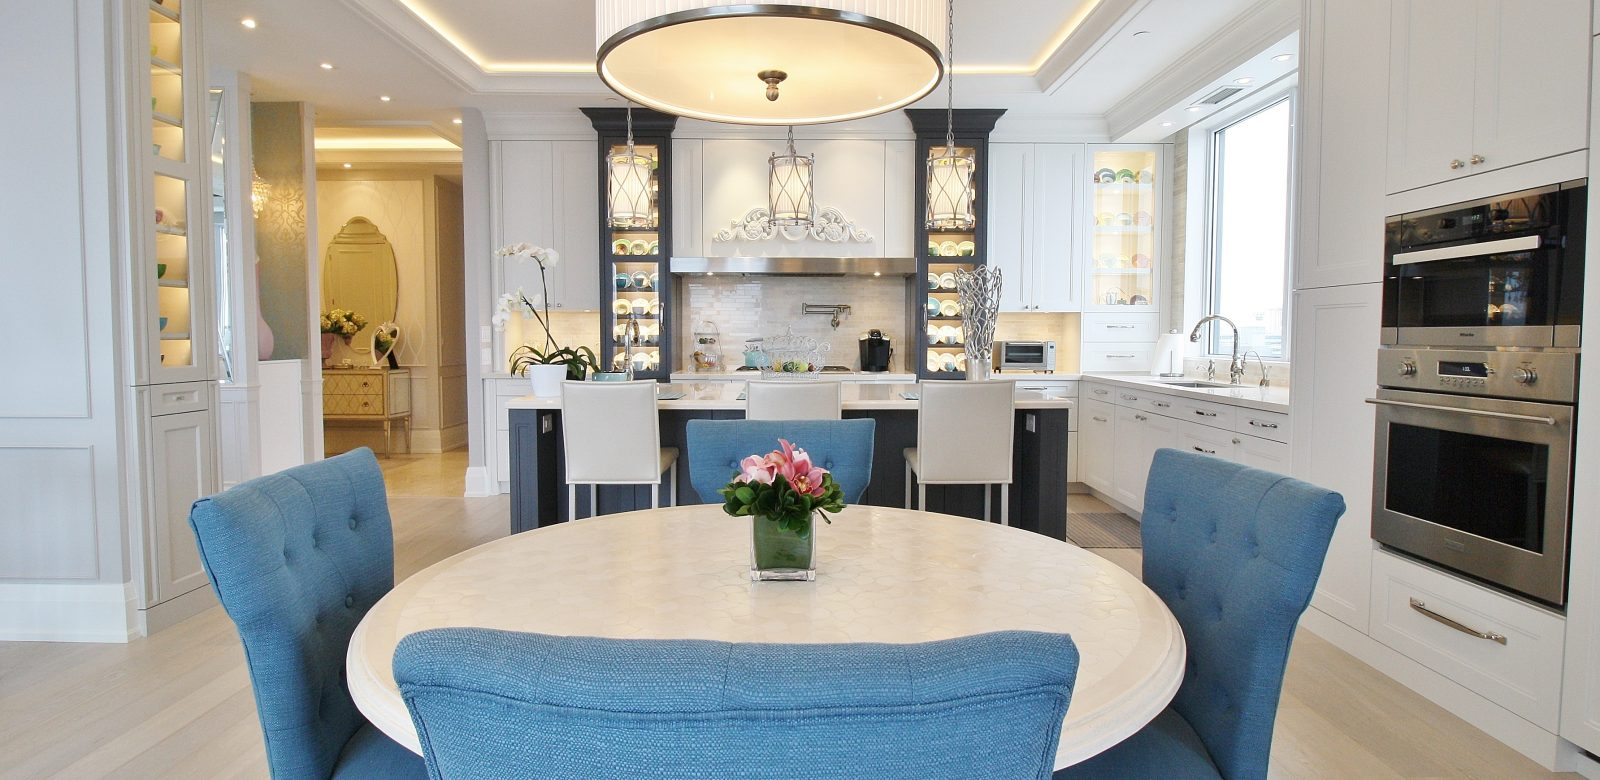 Paris Kitchen Eclectic Style Gallery